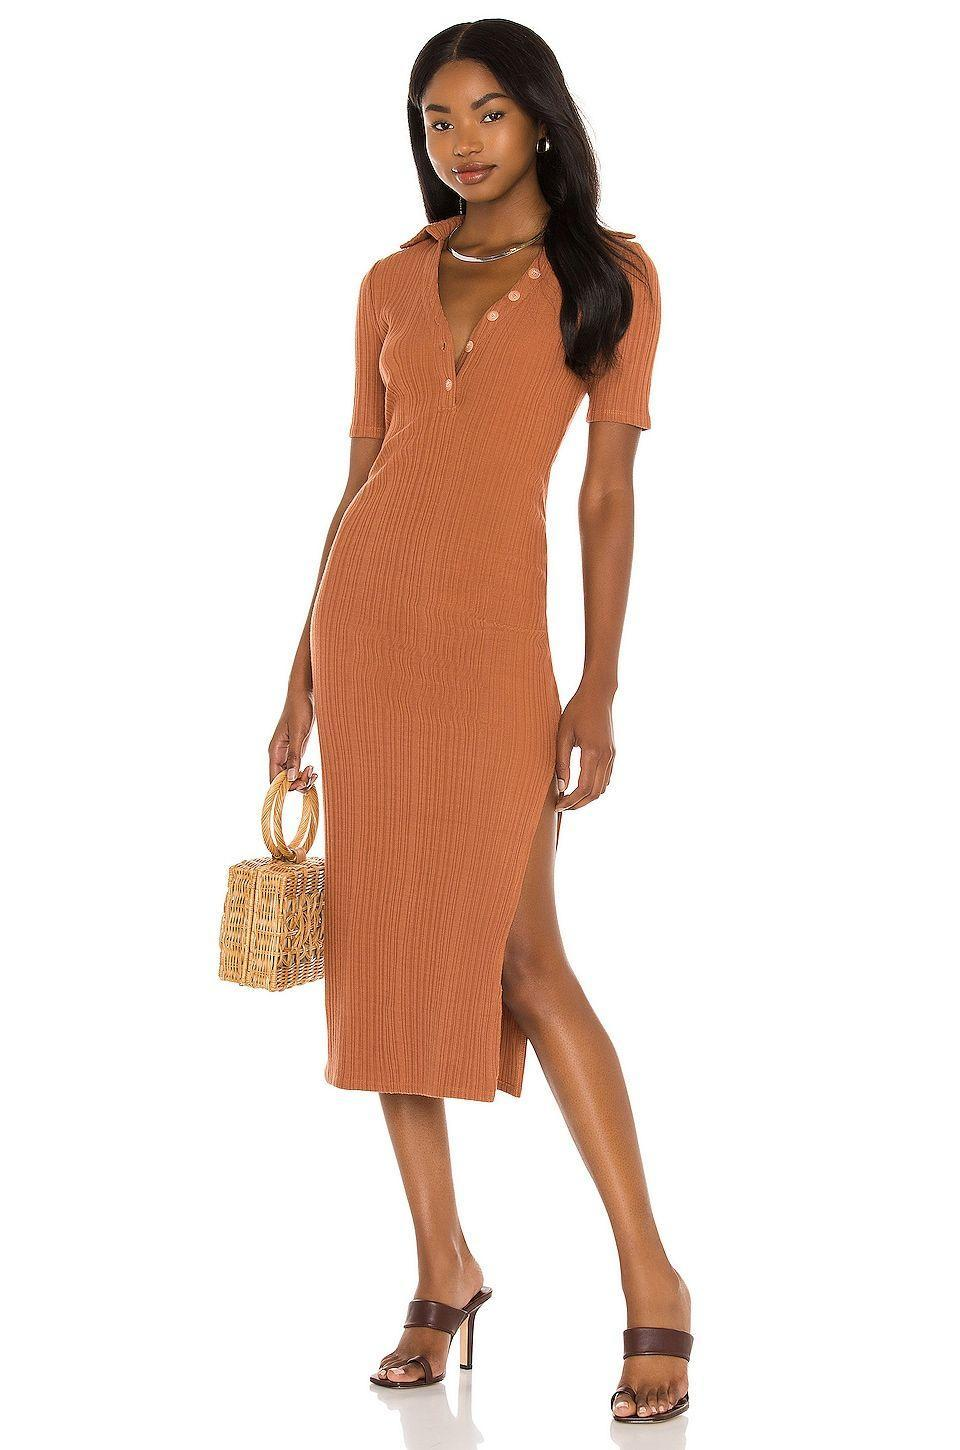 """<p><strong>House of Harlow 1960</strong></p><p>revolve.com</p><p><strong>$168.00</strong></p><p><a href=""""https://go.redirectingat.com?id=74968X1596630&url=https%3A%2F%2Fwww.revolve.com%2Fdp%2FHOOF-WD753%2F&sref=https%3A%2F%2Fwww.goodhousekeeping.com%2Fclothing%2Fg27816744%2Fbest-fall-dresses%2F"""" rel=""""nofollow noopener"""" target=""""_blank"""" data-ylk=""""slk:Shop Now"""" class=""""link rapid-noclick-resp"""">Shop Now</a></p><p>The ribbed jersey fabric allows for stretch, while the neckline can be adjusted to your coverage perference. It's perfect for a night out or, if you dress it up, can work for a fall wedding. </p>"""